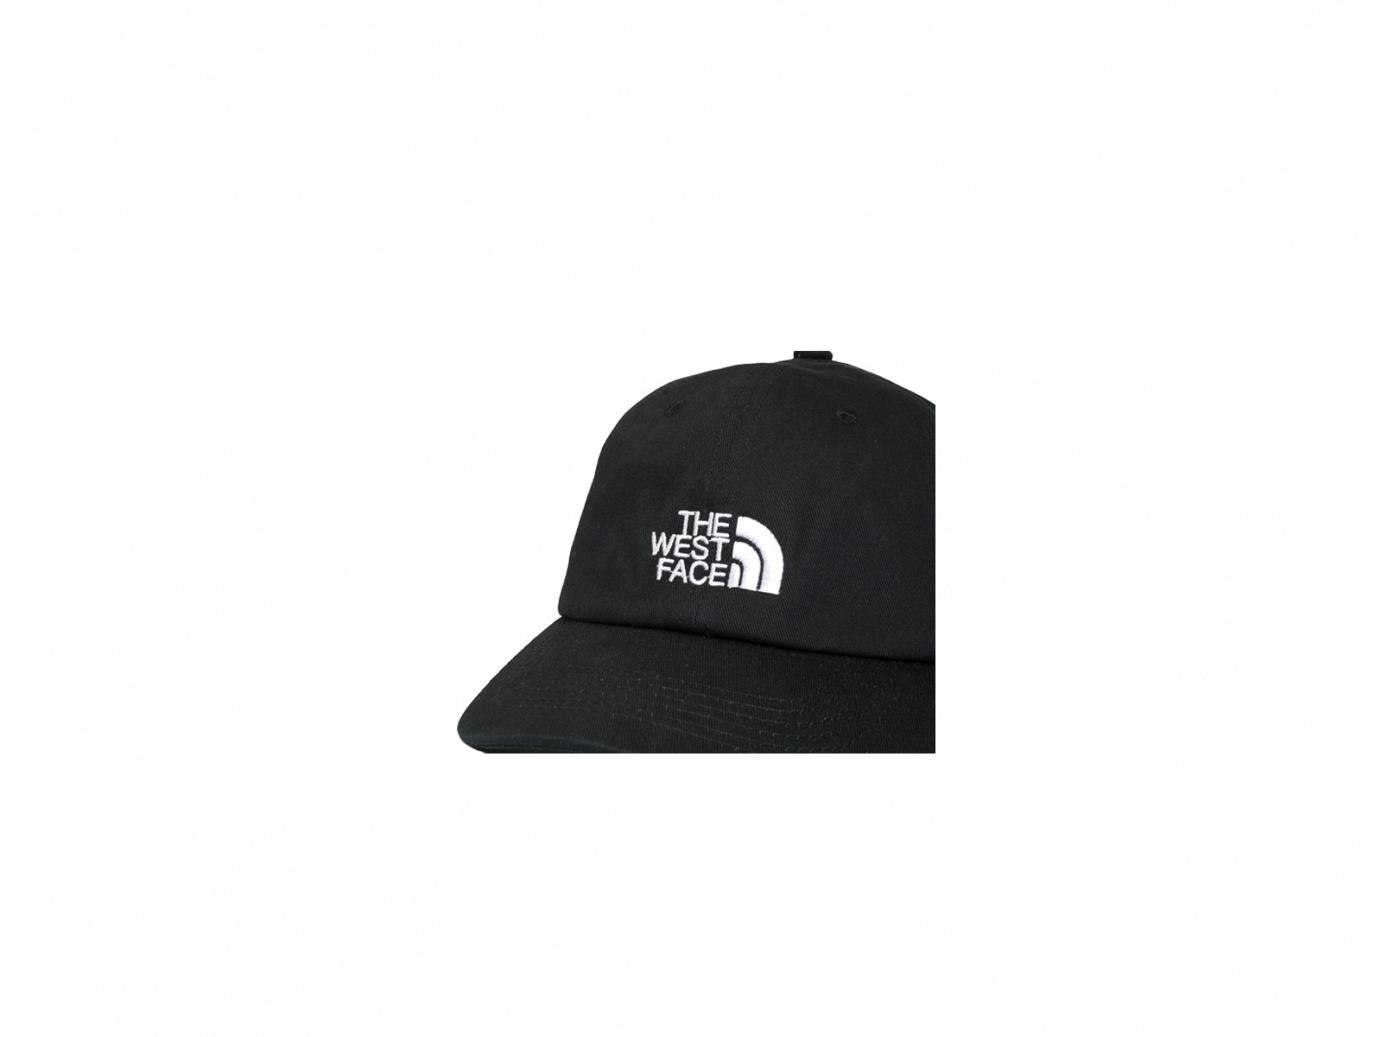 9857a5e0adf44 the west face dad hat - Swearhand